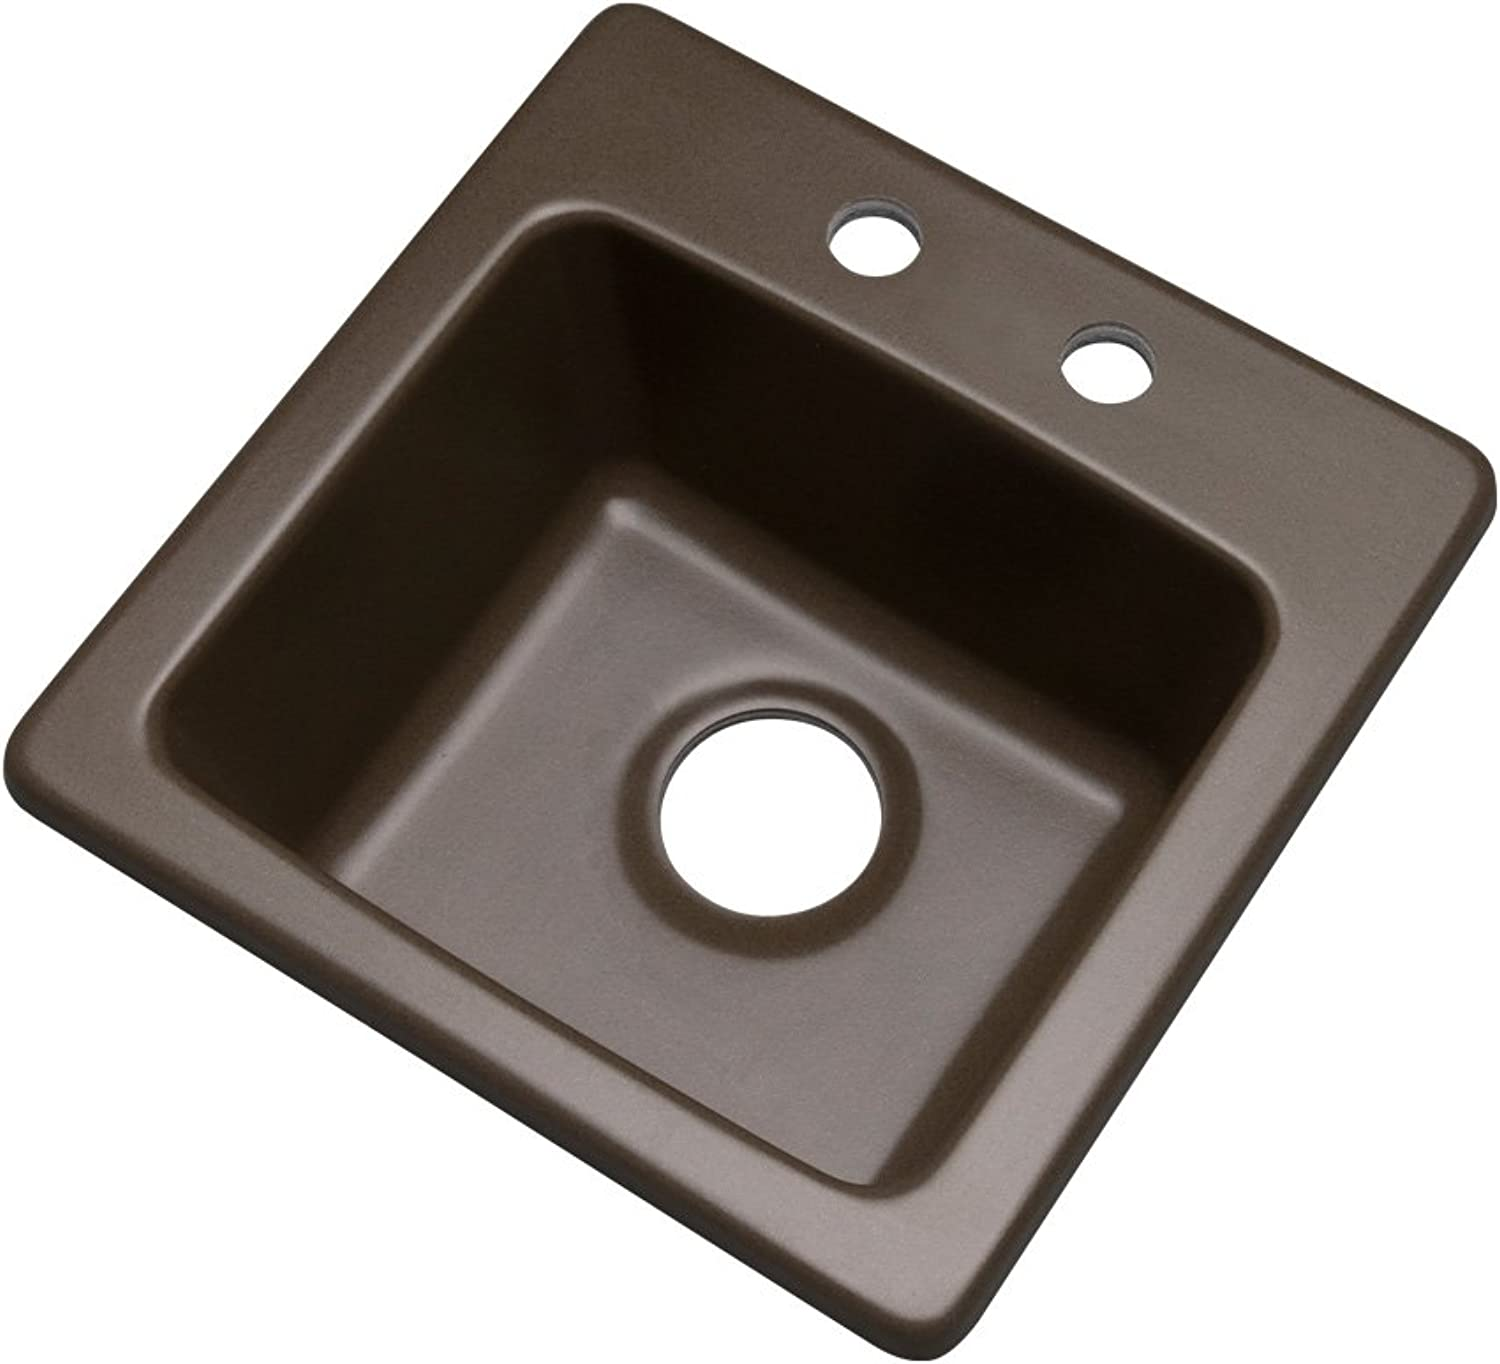 Dekor Sinks 27292Q Duxbury Composite Granite Prep Sink with Two Holes, 16 , Mocha